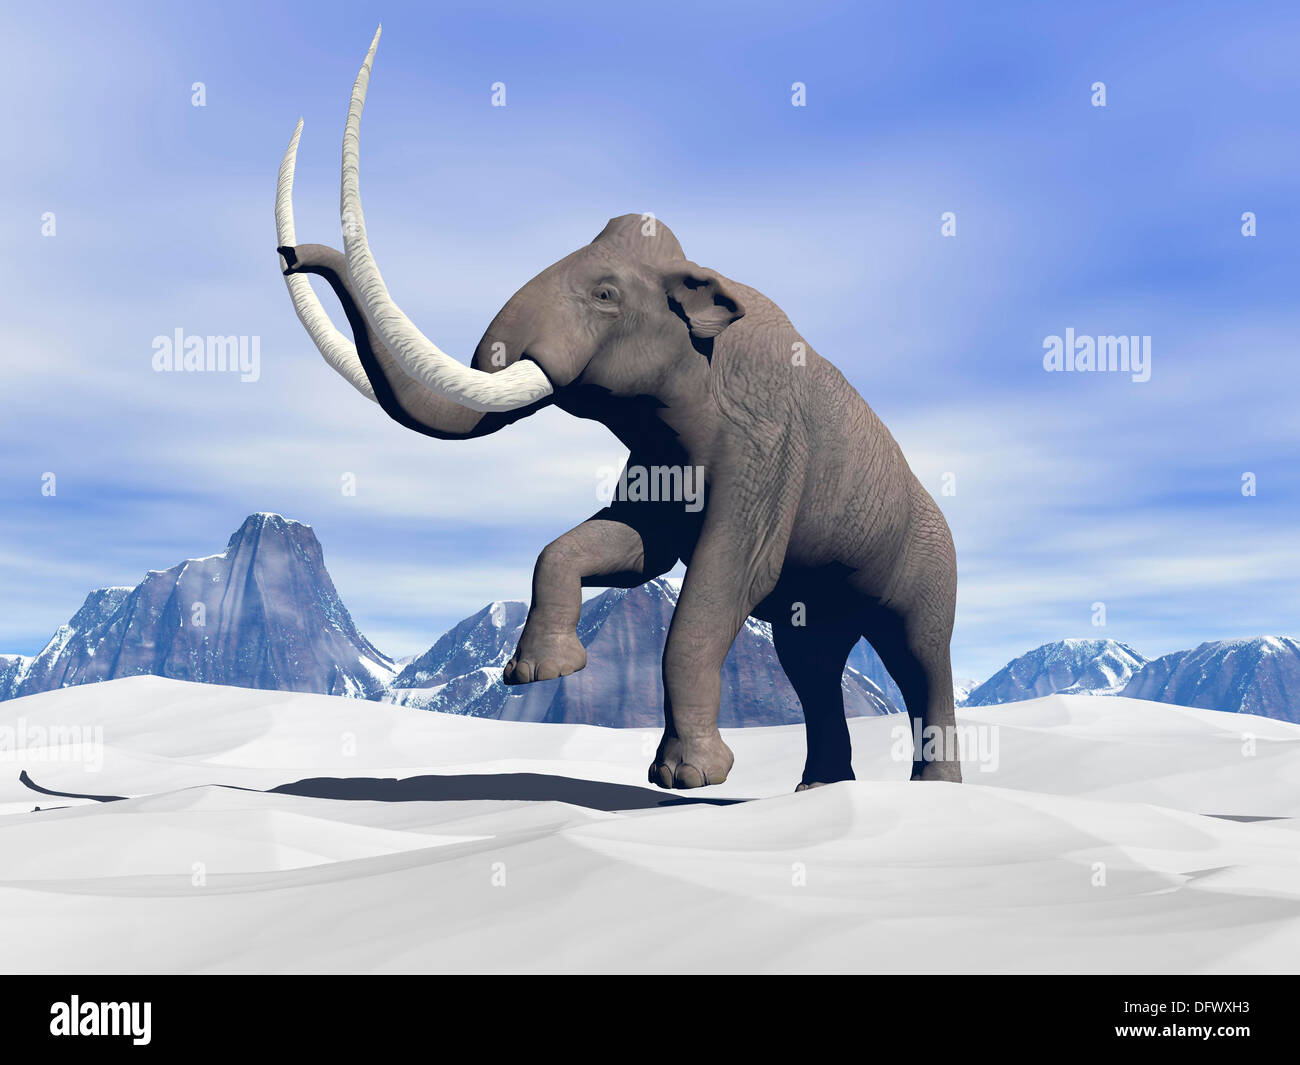 Large mammoth walking slowly on the snowy mountain. - Stock Image